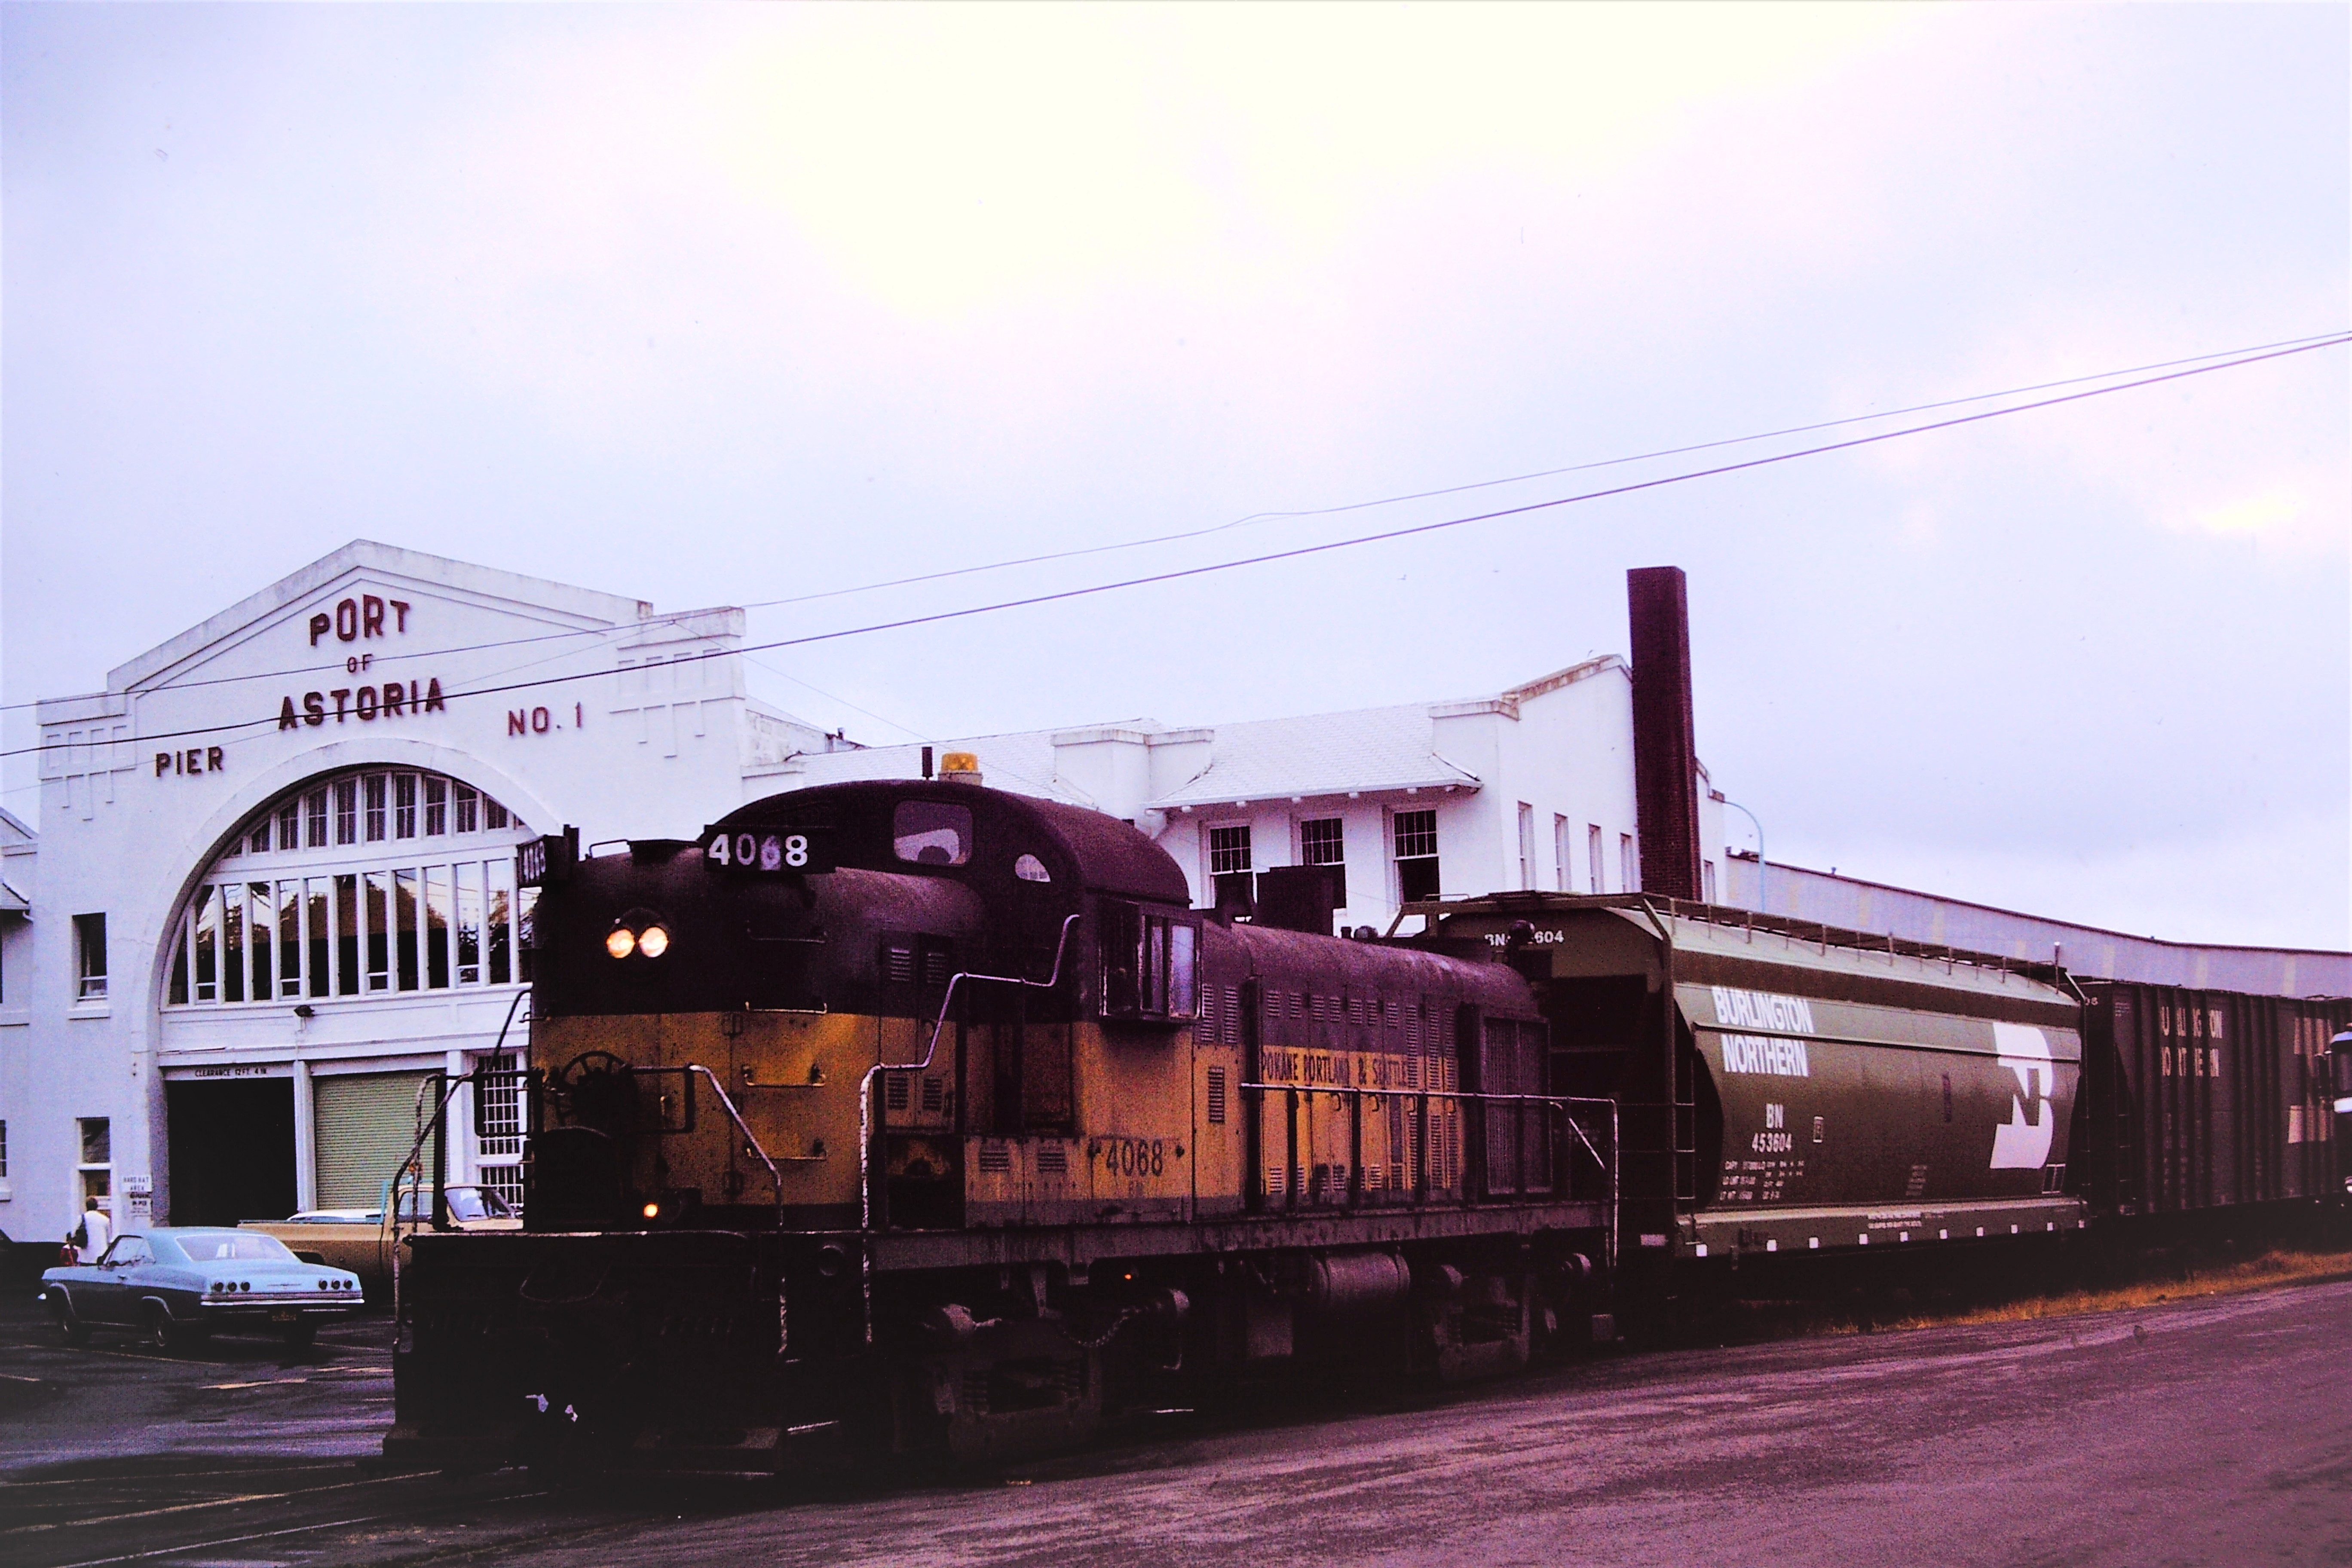 SP&S Railway engine 4068 at the Port of Astoria pier no. 1